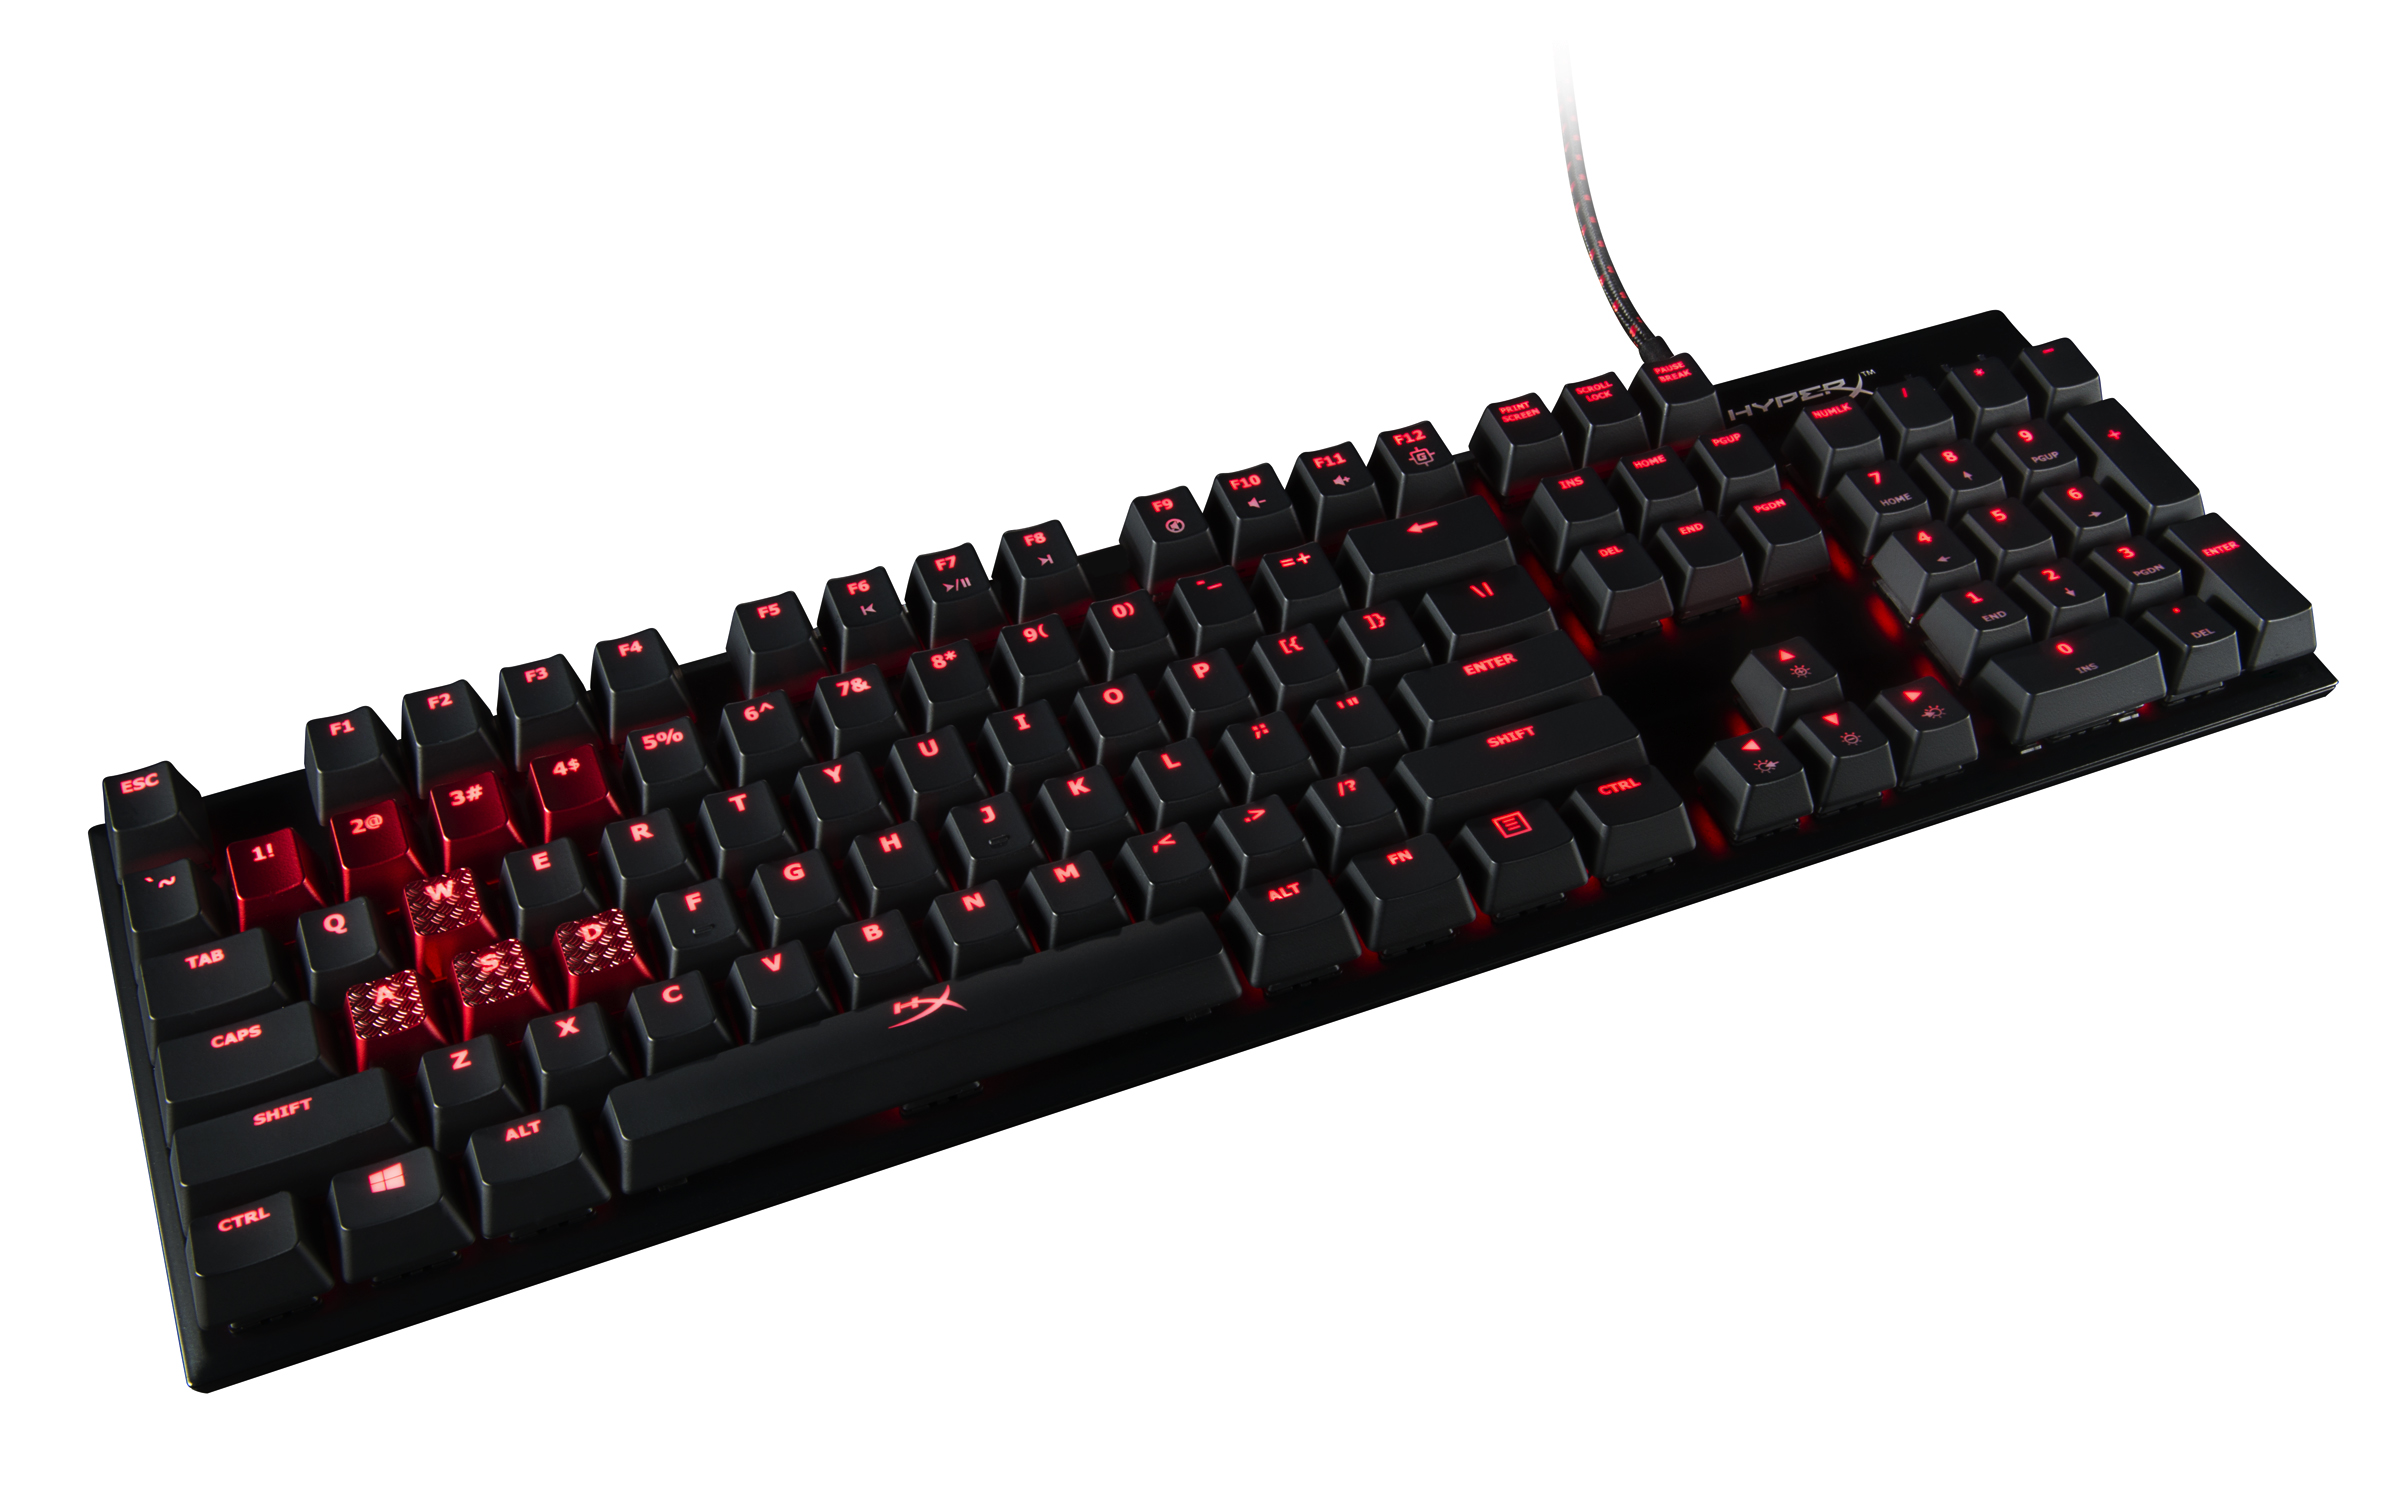 HyperX_Alloy FPS Gaming Keyboard Angle View.jpg